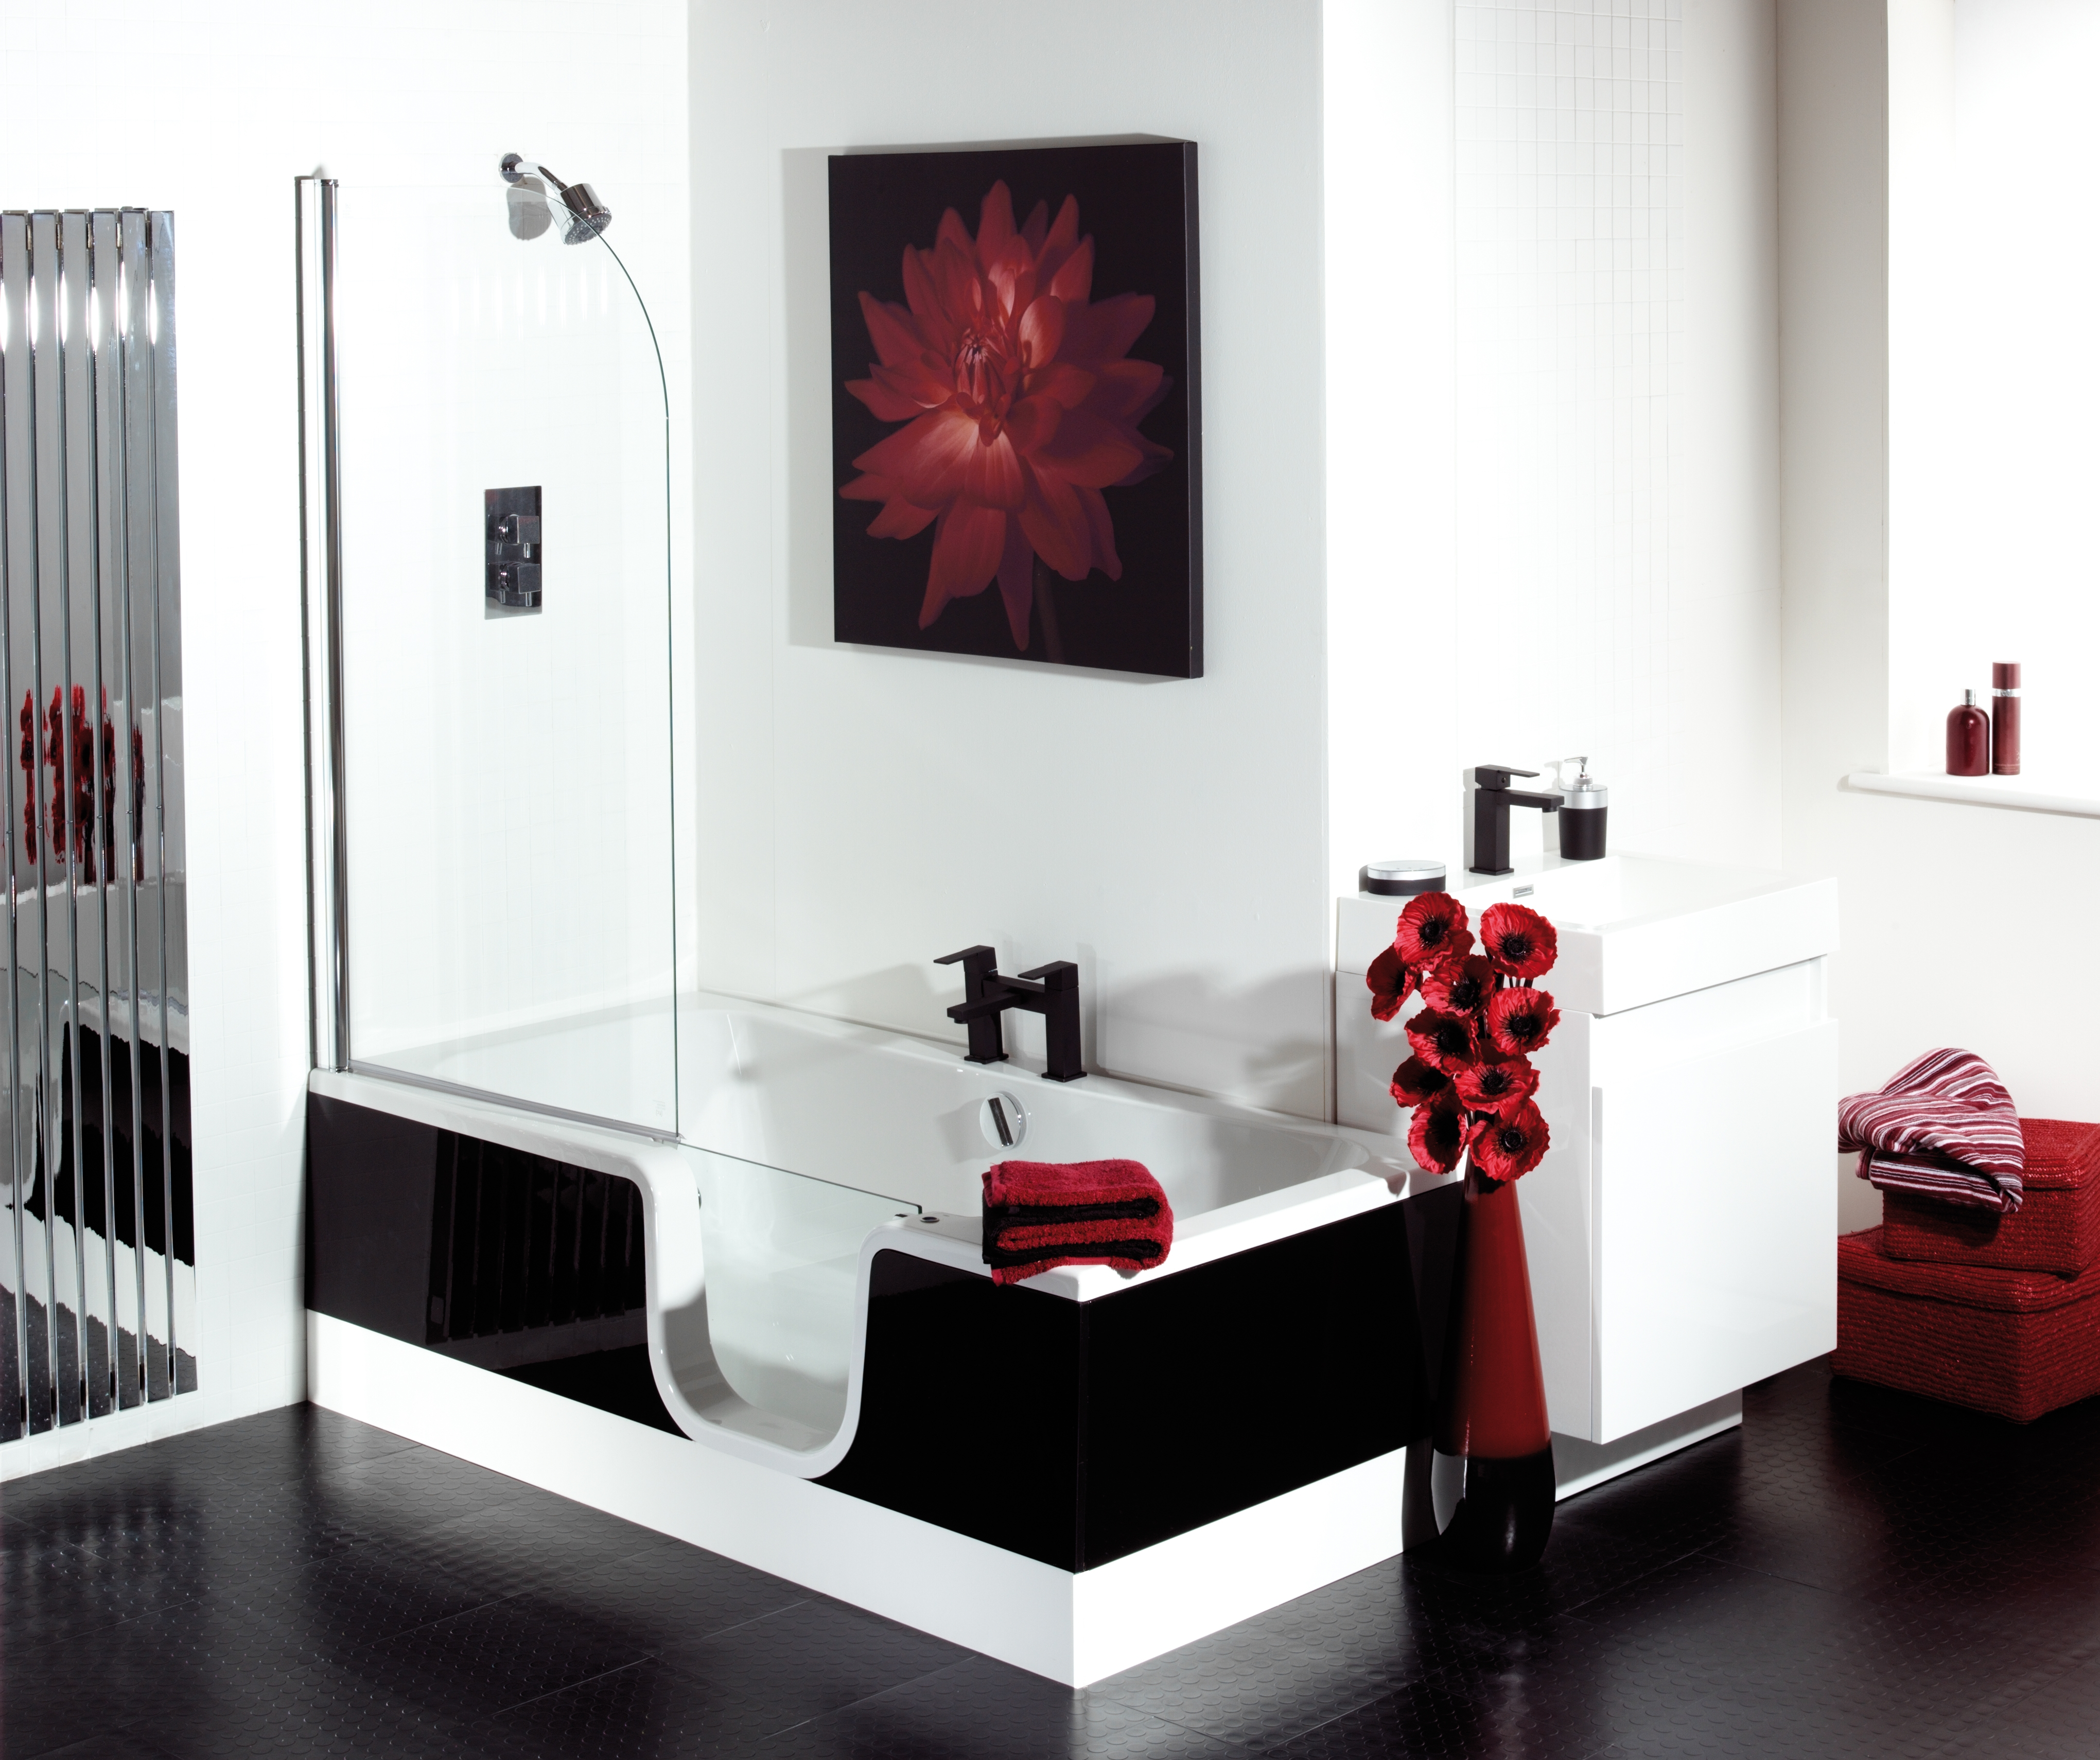 A Range of Stylish Design Ideas for Accessible Bathrooms